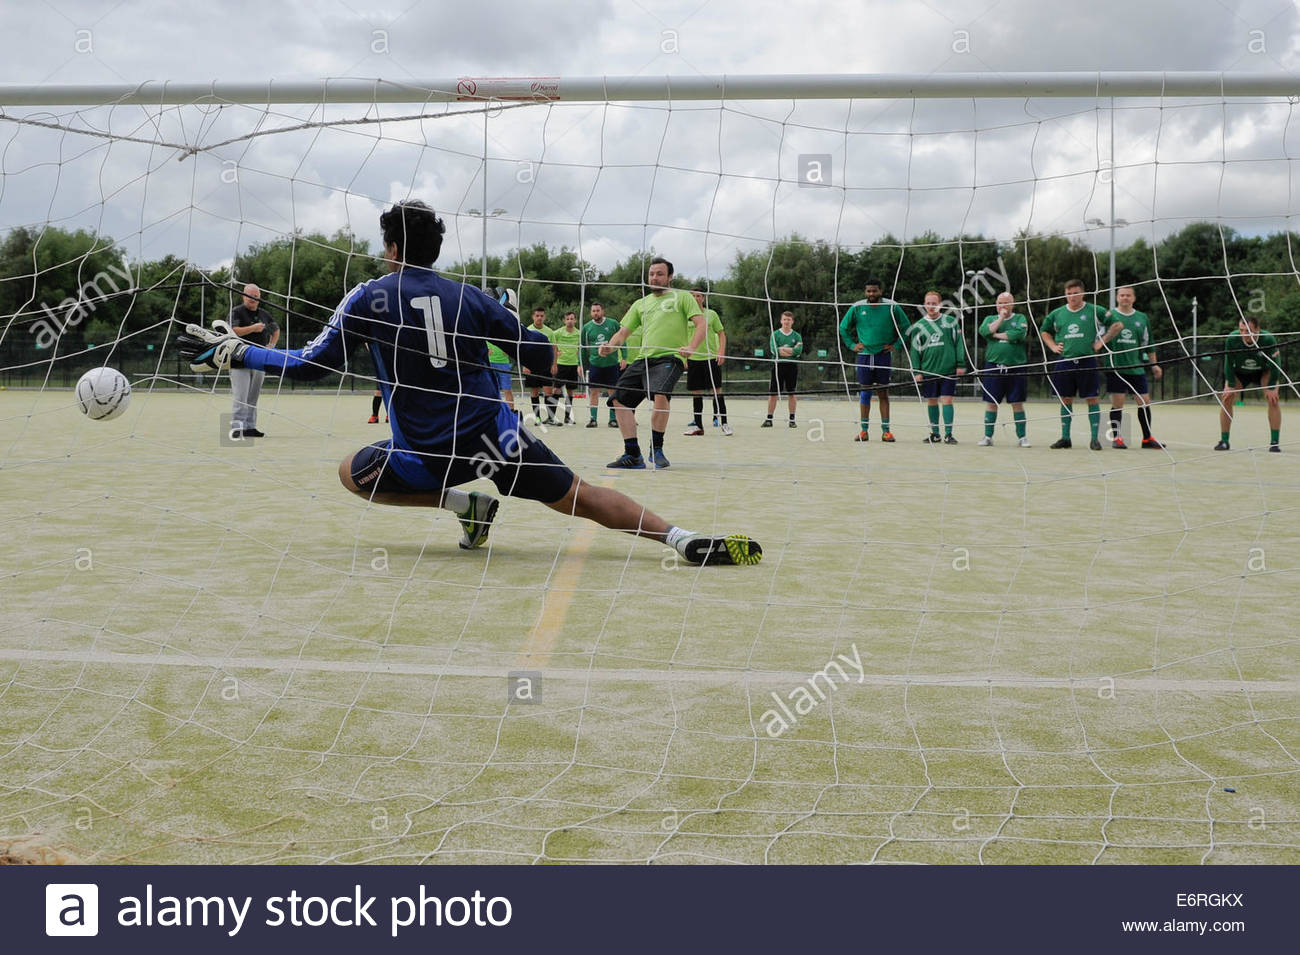 A goalkeepers view of a soccer match as a penalty kick is taken - Stock Image